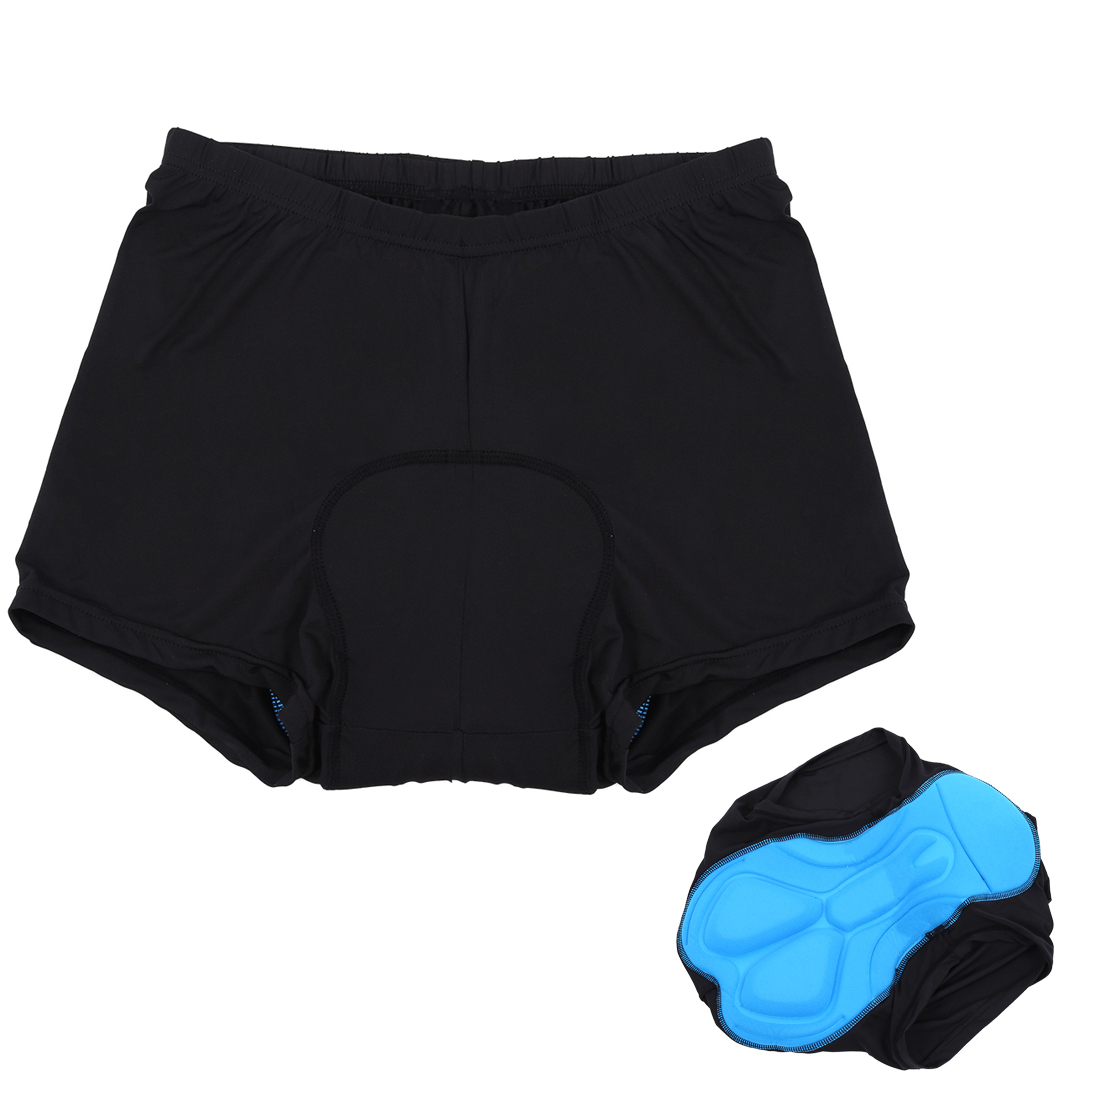 Underwear-for-Men-Cycling-Bike-3D-Bike-Short-Pad-Silica-gel-and-sponge-XS-b-S5E2